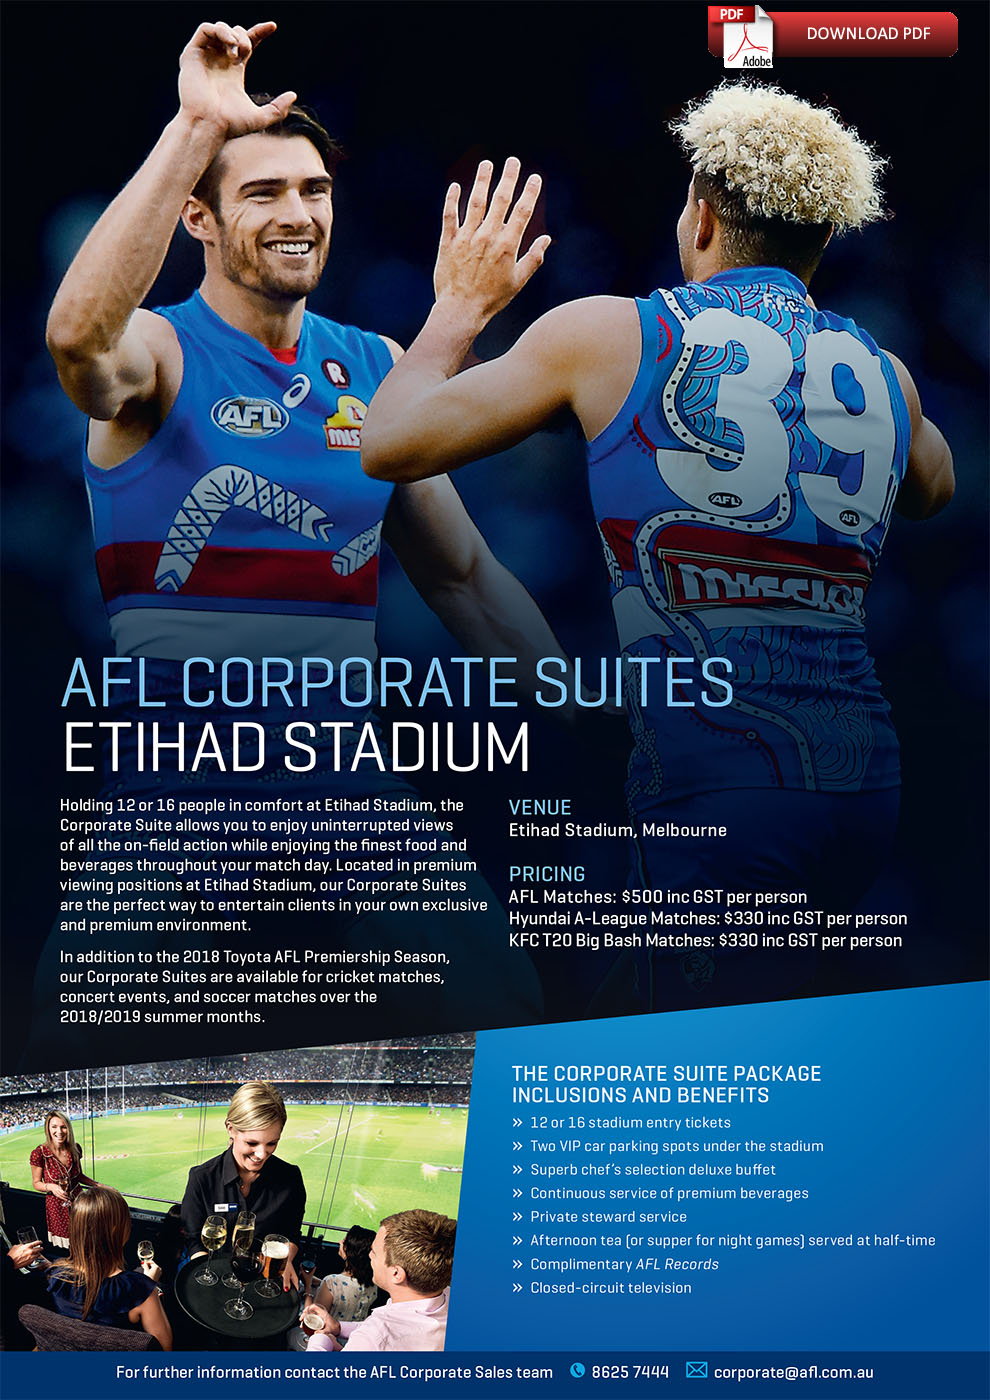 2018_Etihad_Stadium_Corporate_Suite_Flyer1